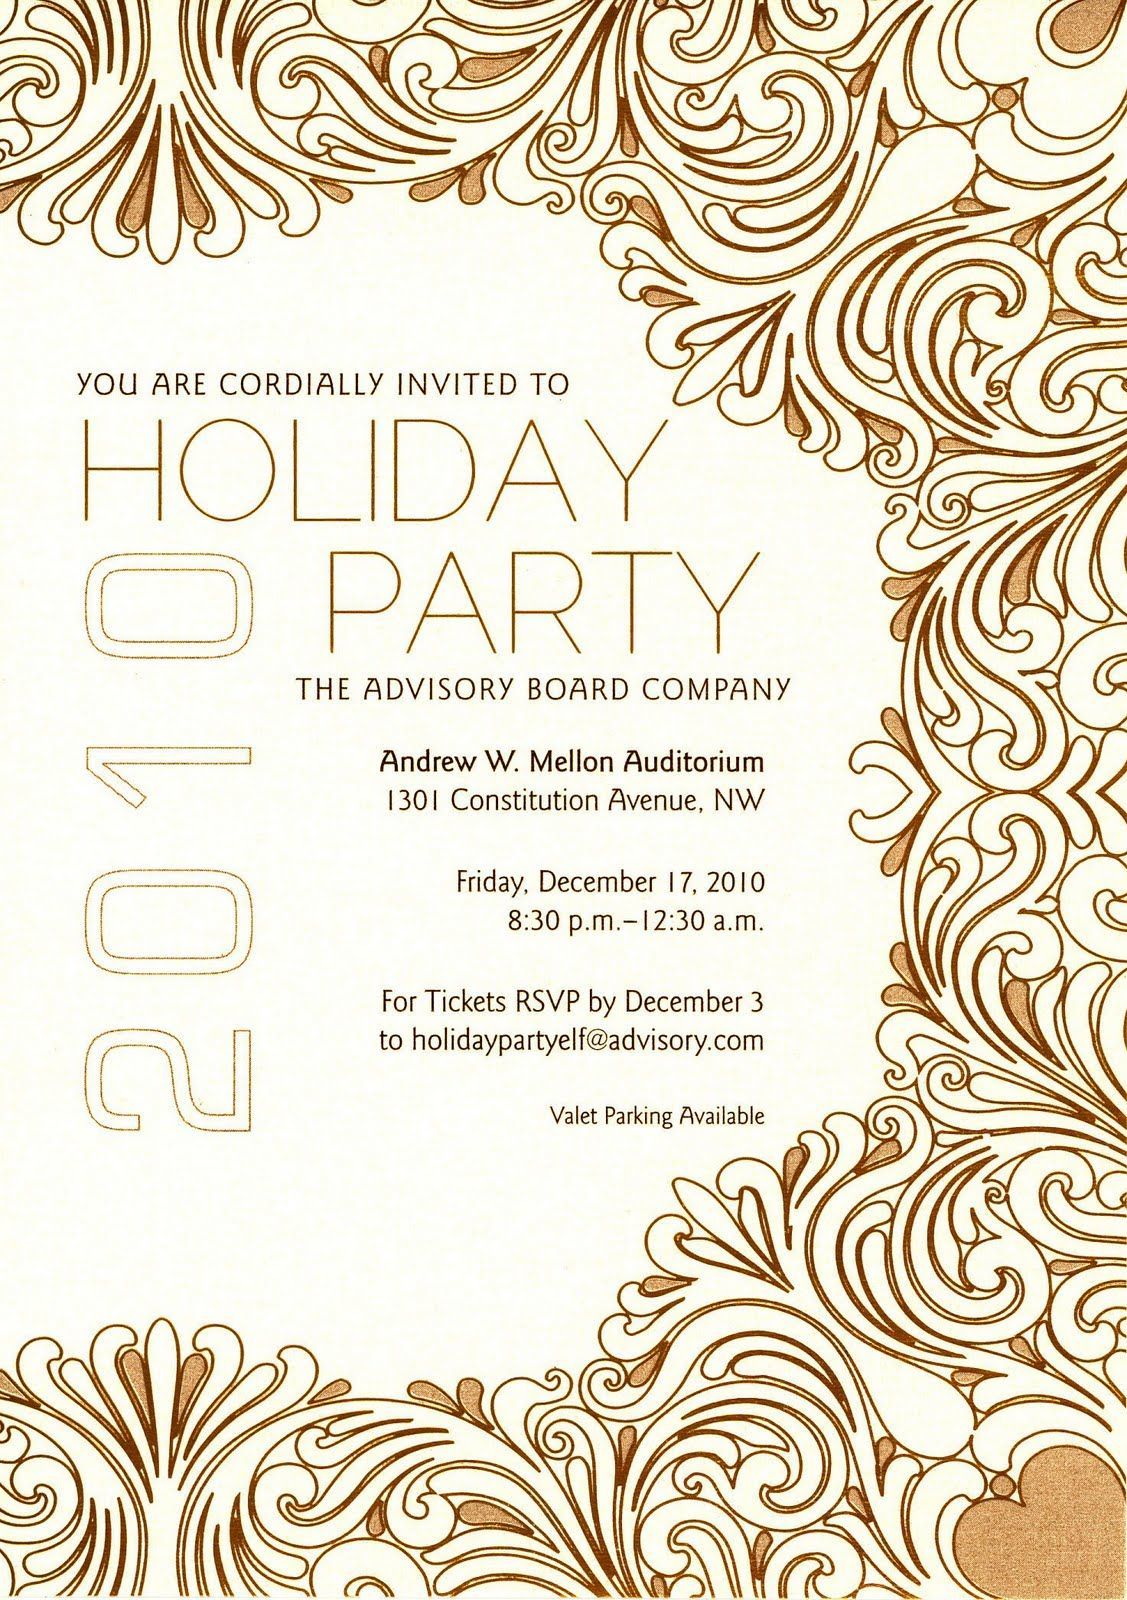 Mysoon Taha Portfolio Company Christmas Party Invitation - Employee christmas party invitation template